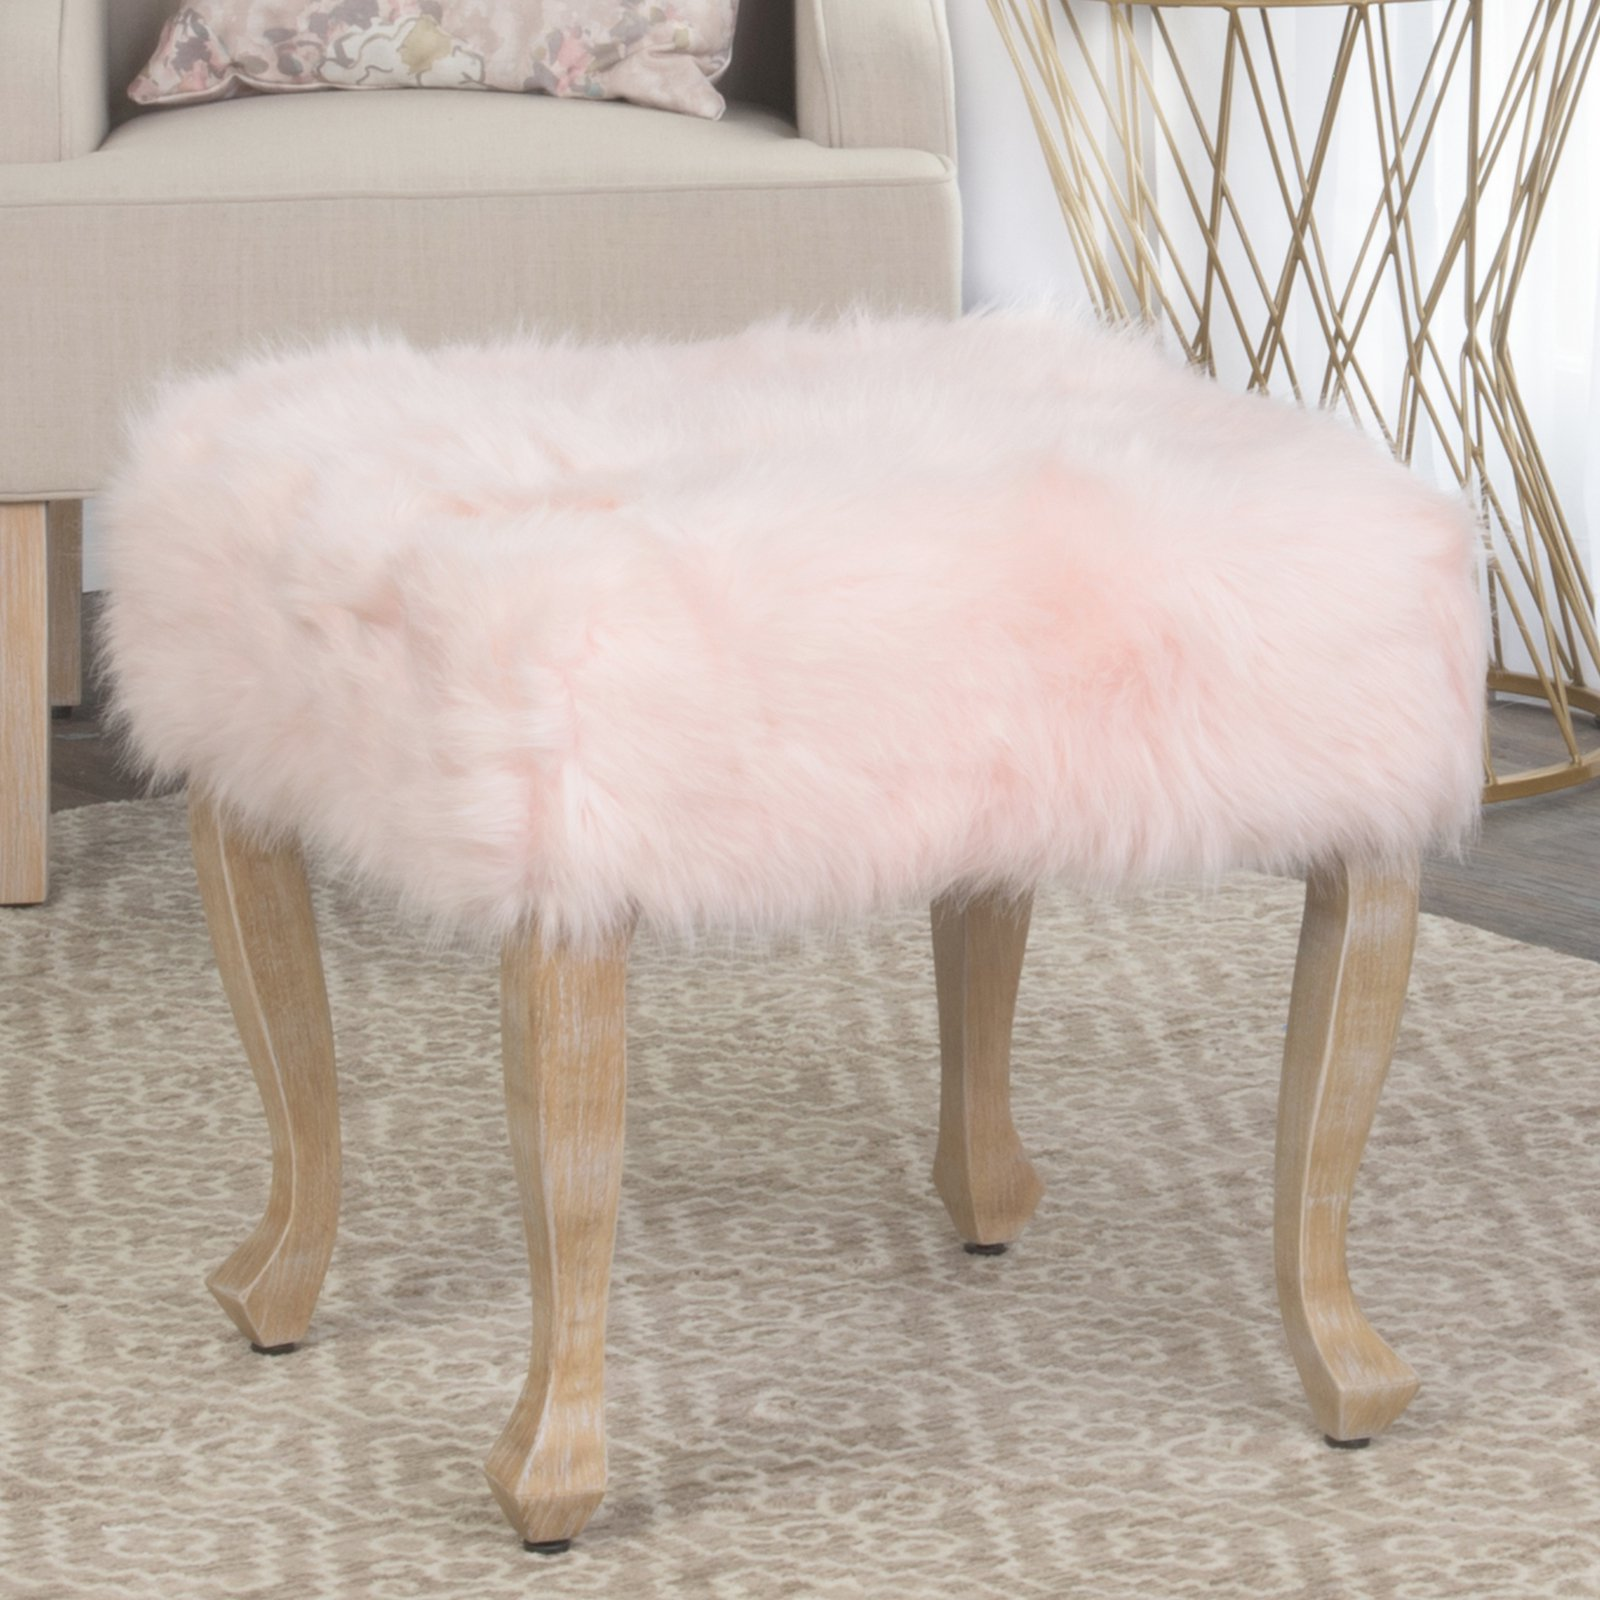 HomePop Faux Fur Ottoman with Wooden Legs, Multiple Colors